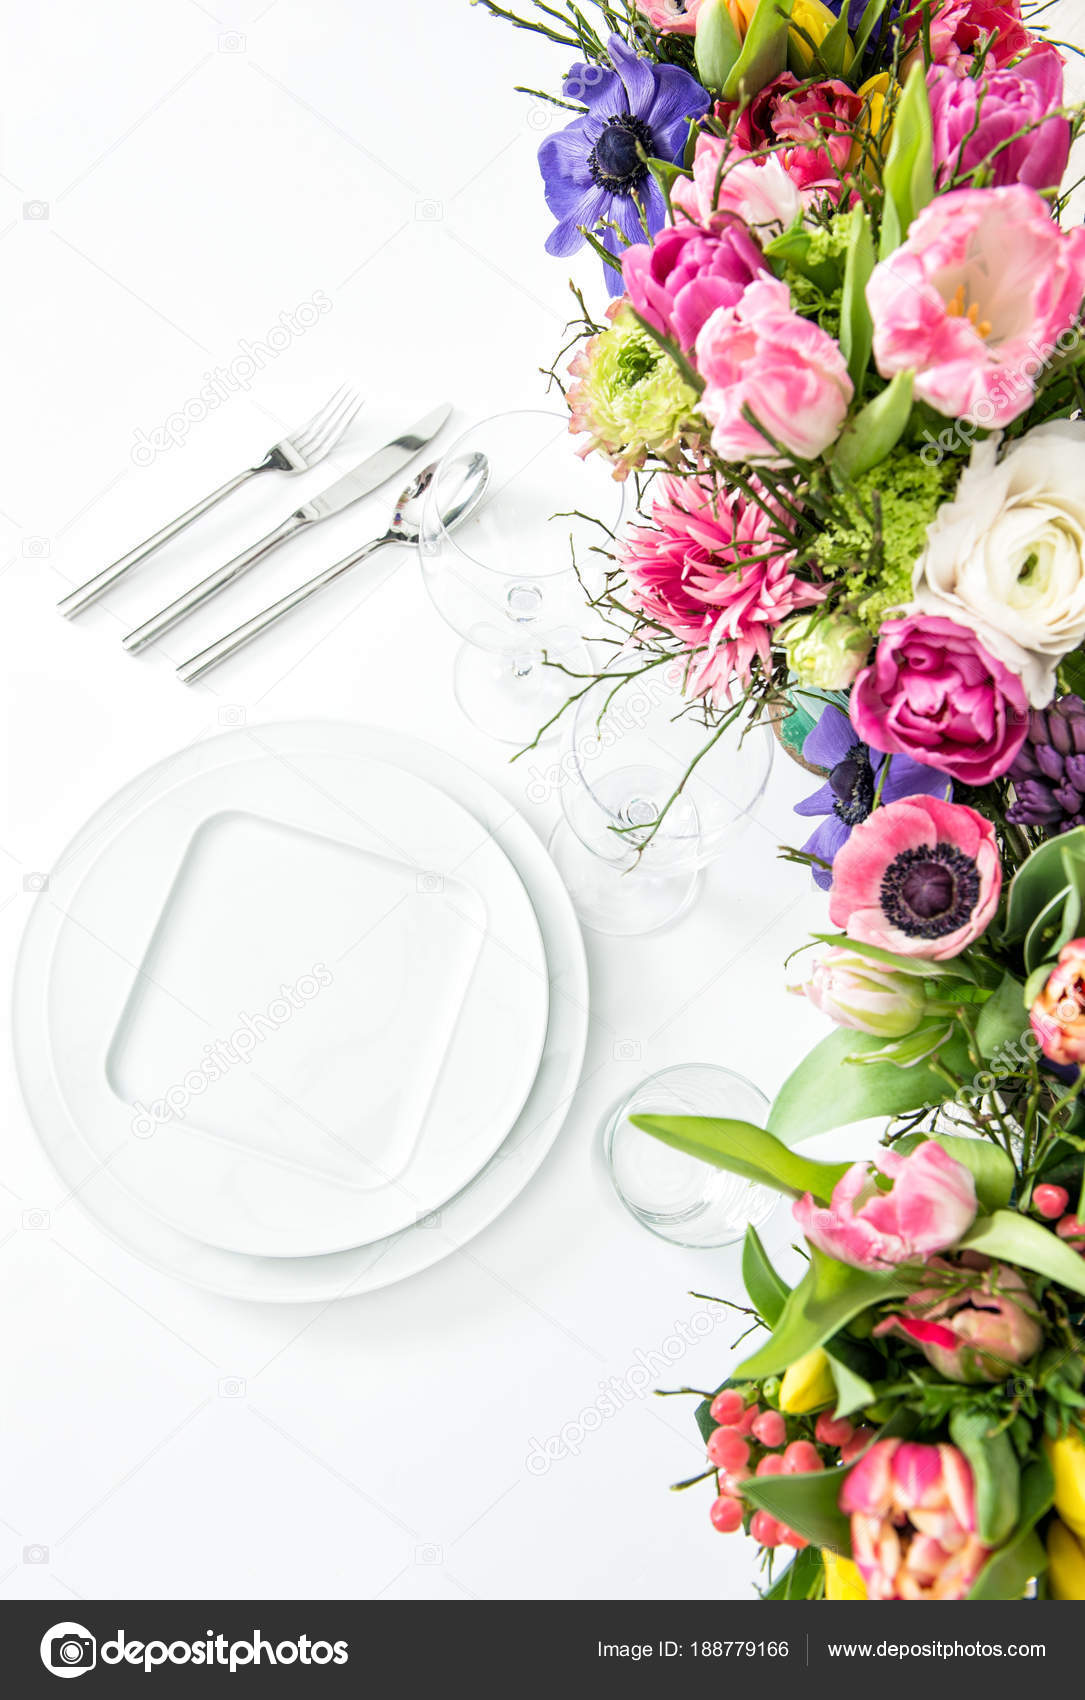 Place setting spring flowers white background table decoration place setting spring flowers white background table decoration stock photo mightylinksfo